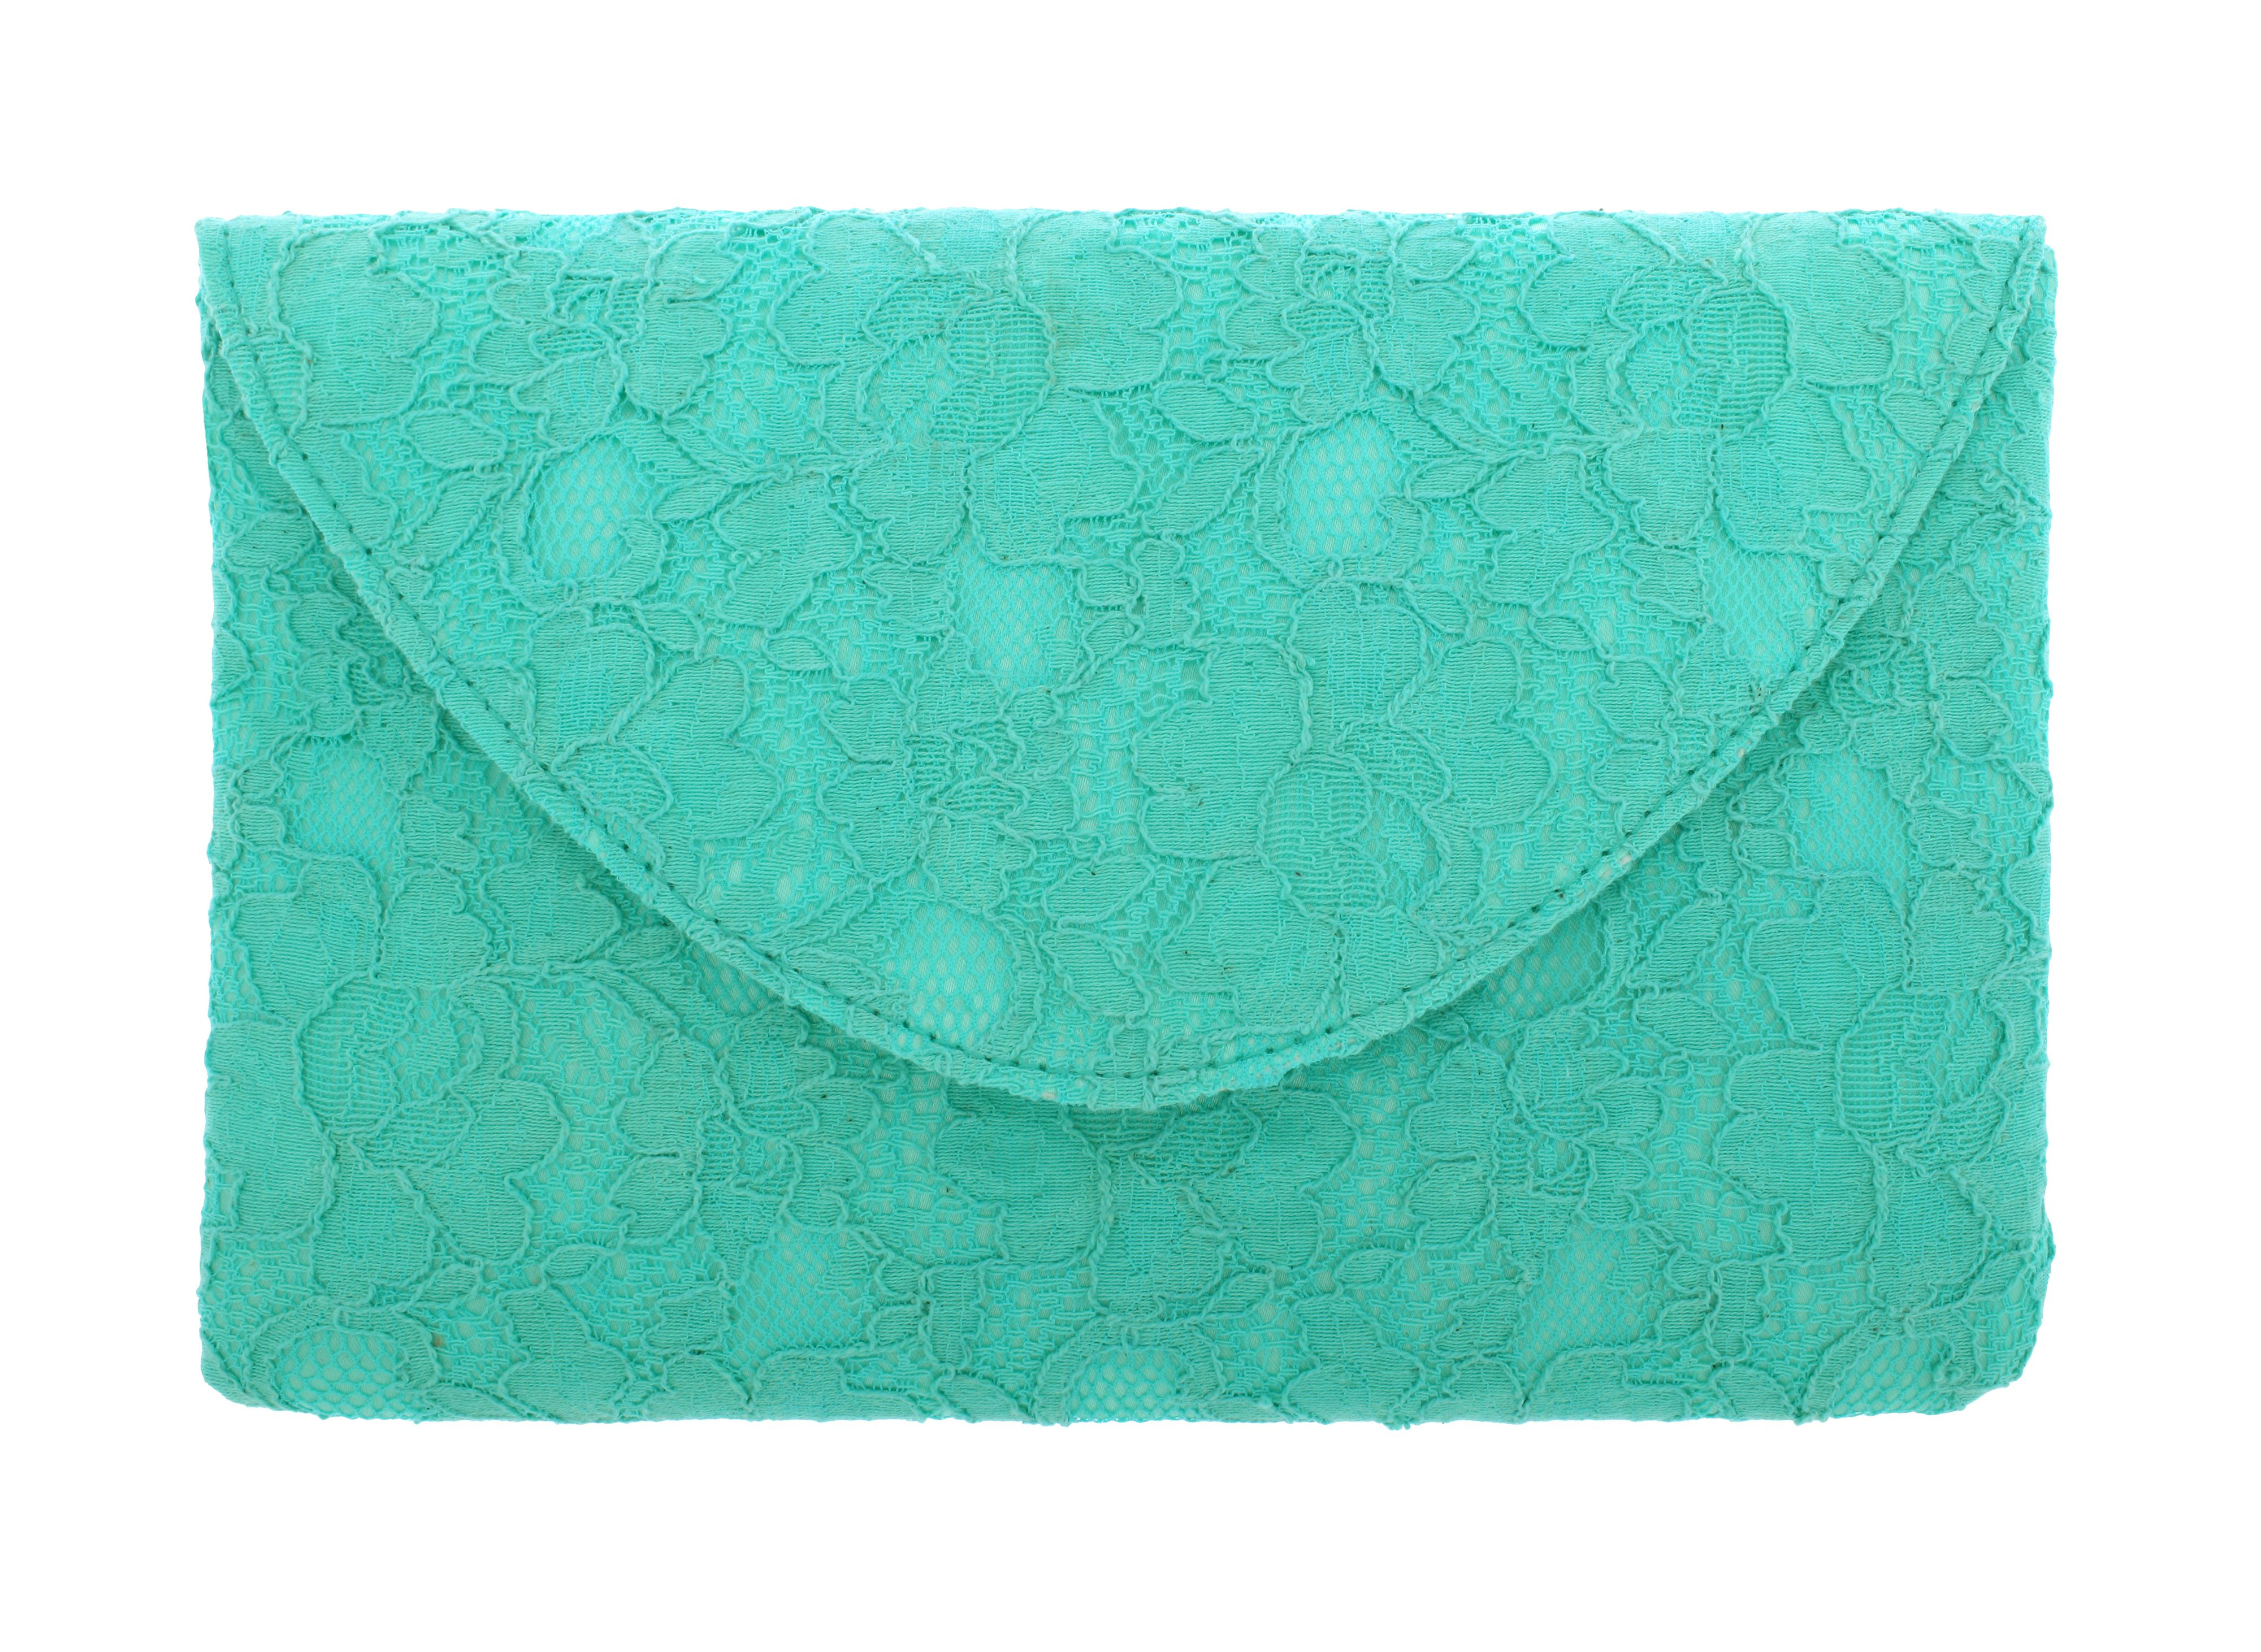 Lace Clutch Bag